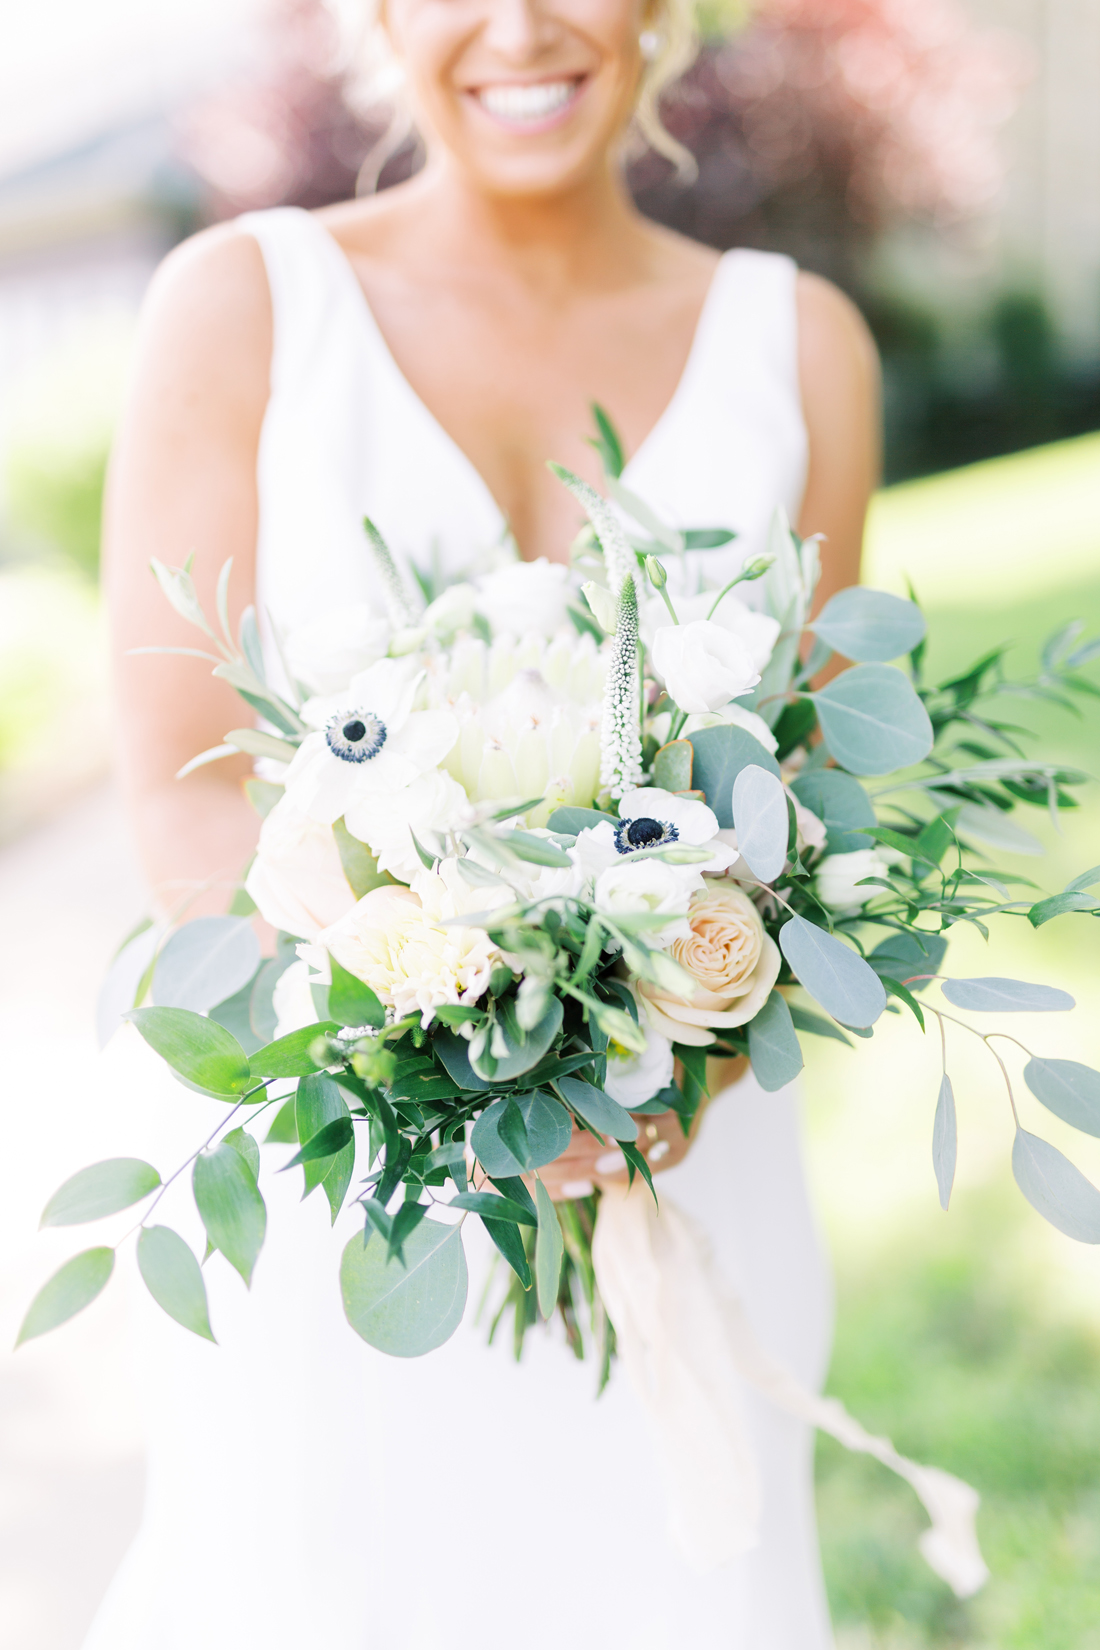 wedding bouquet with anemone flowers how to use anemones in wedding decor